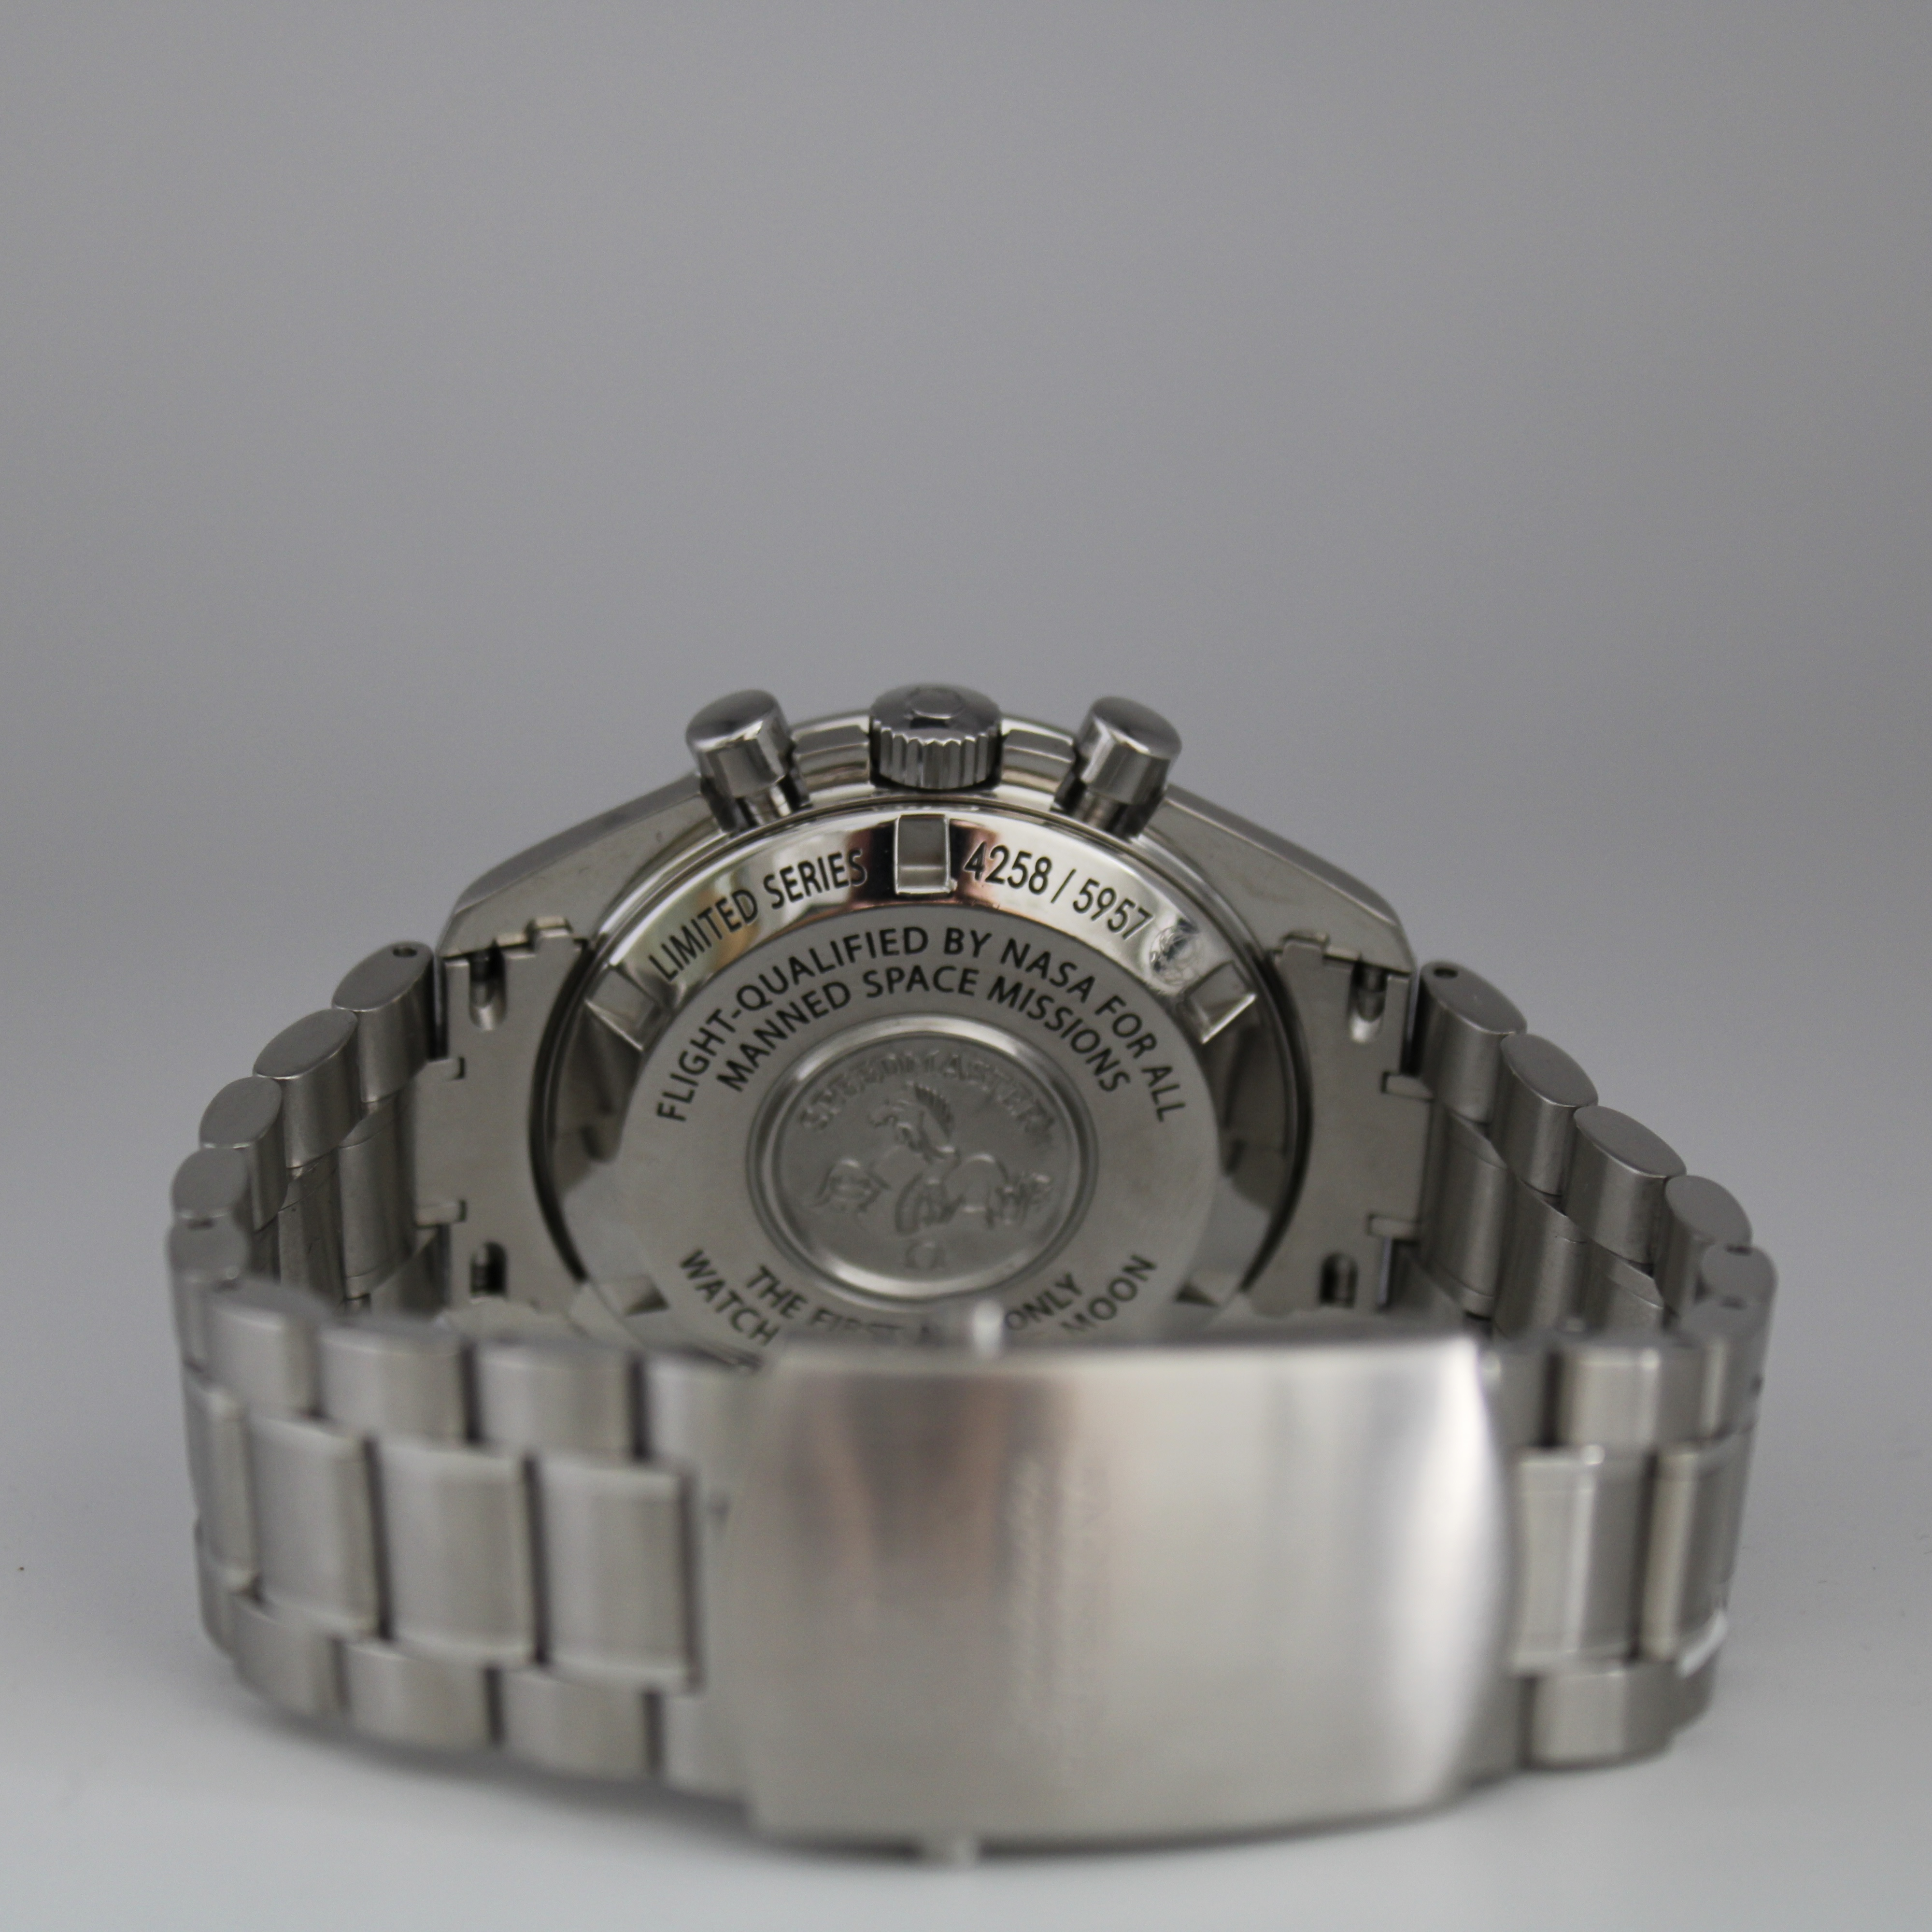 Omega Speedmaster Limted Series The First And Only Watch ref 311.30.42.30.01.001 - Image 5 of 5